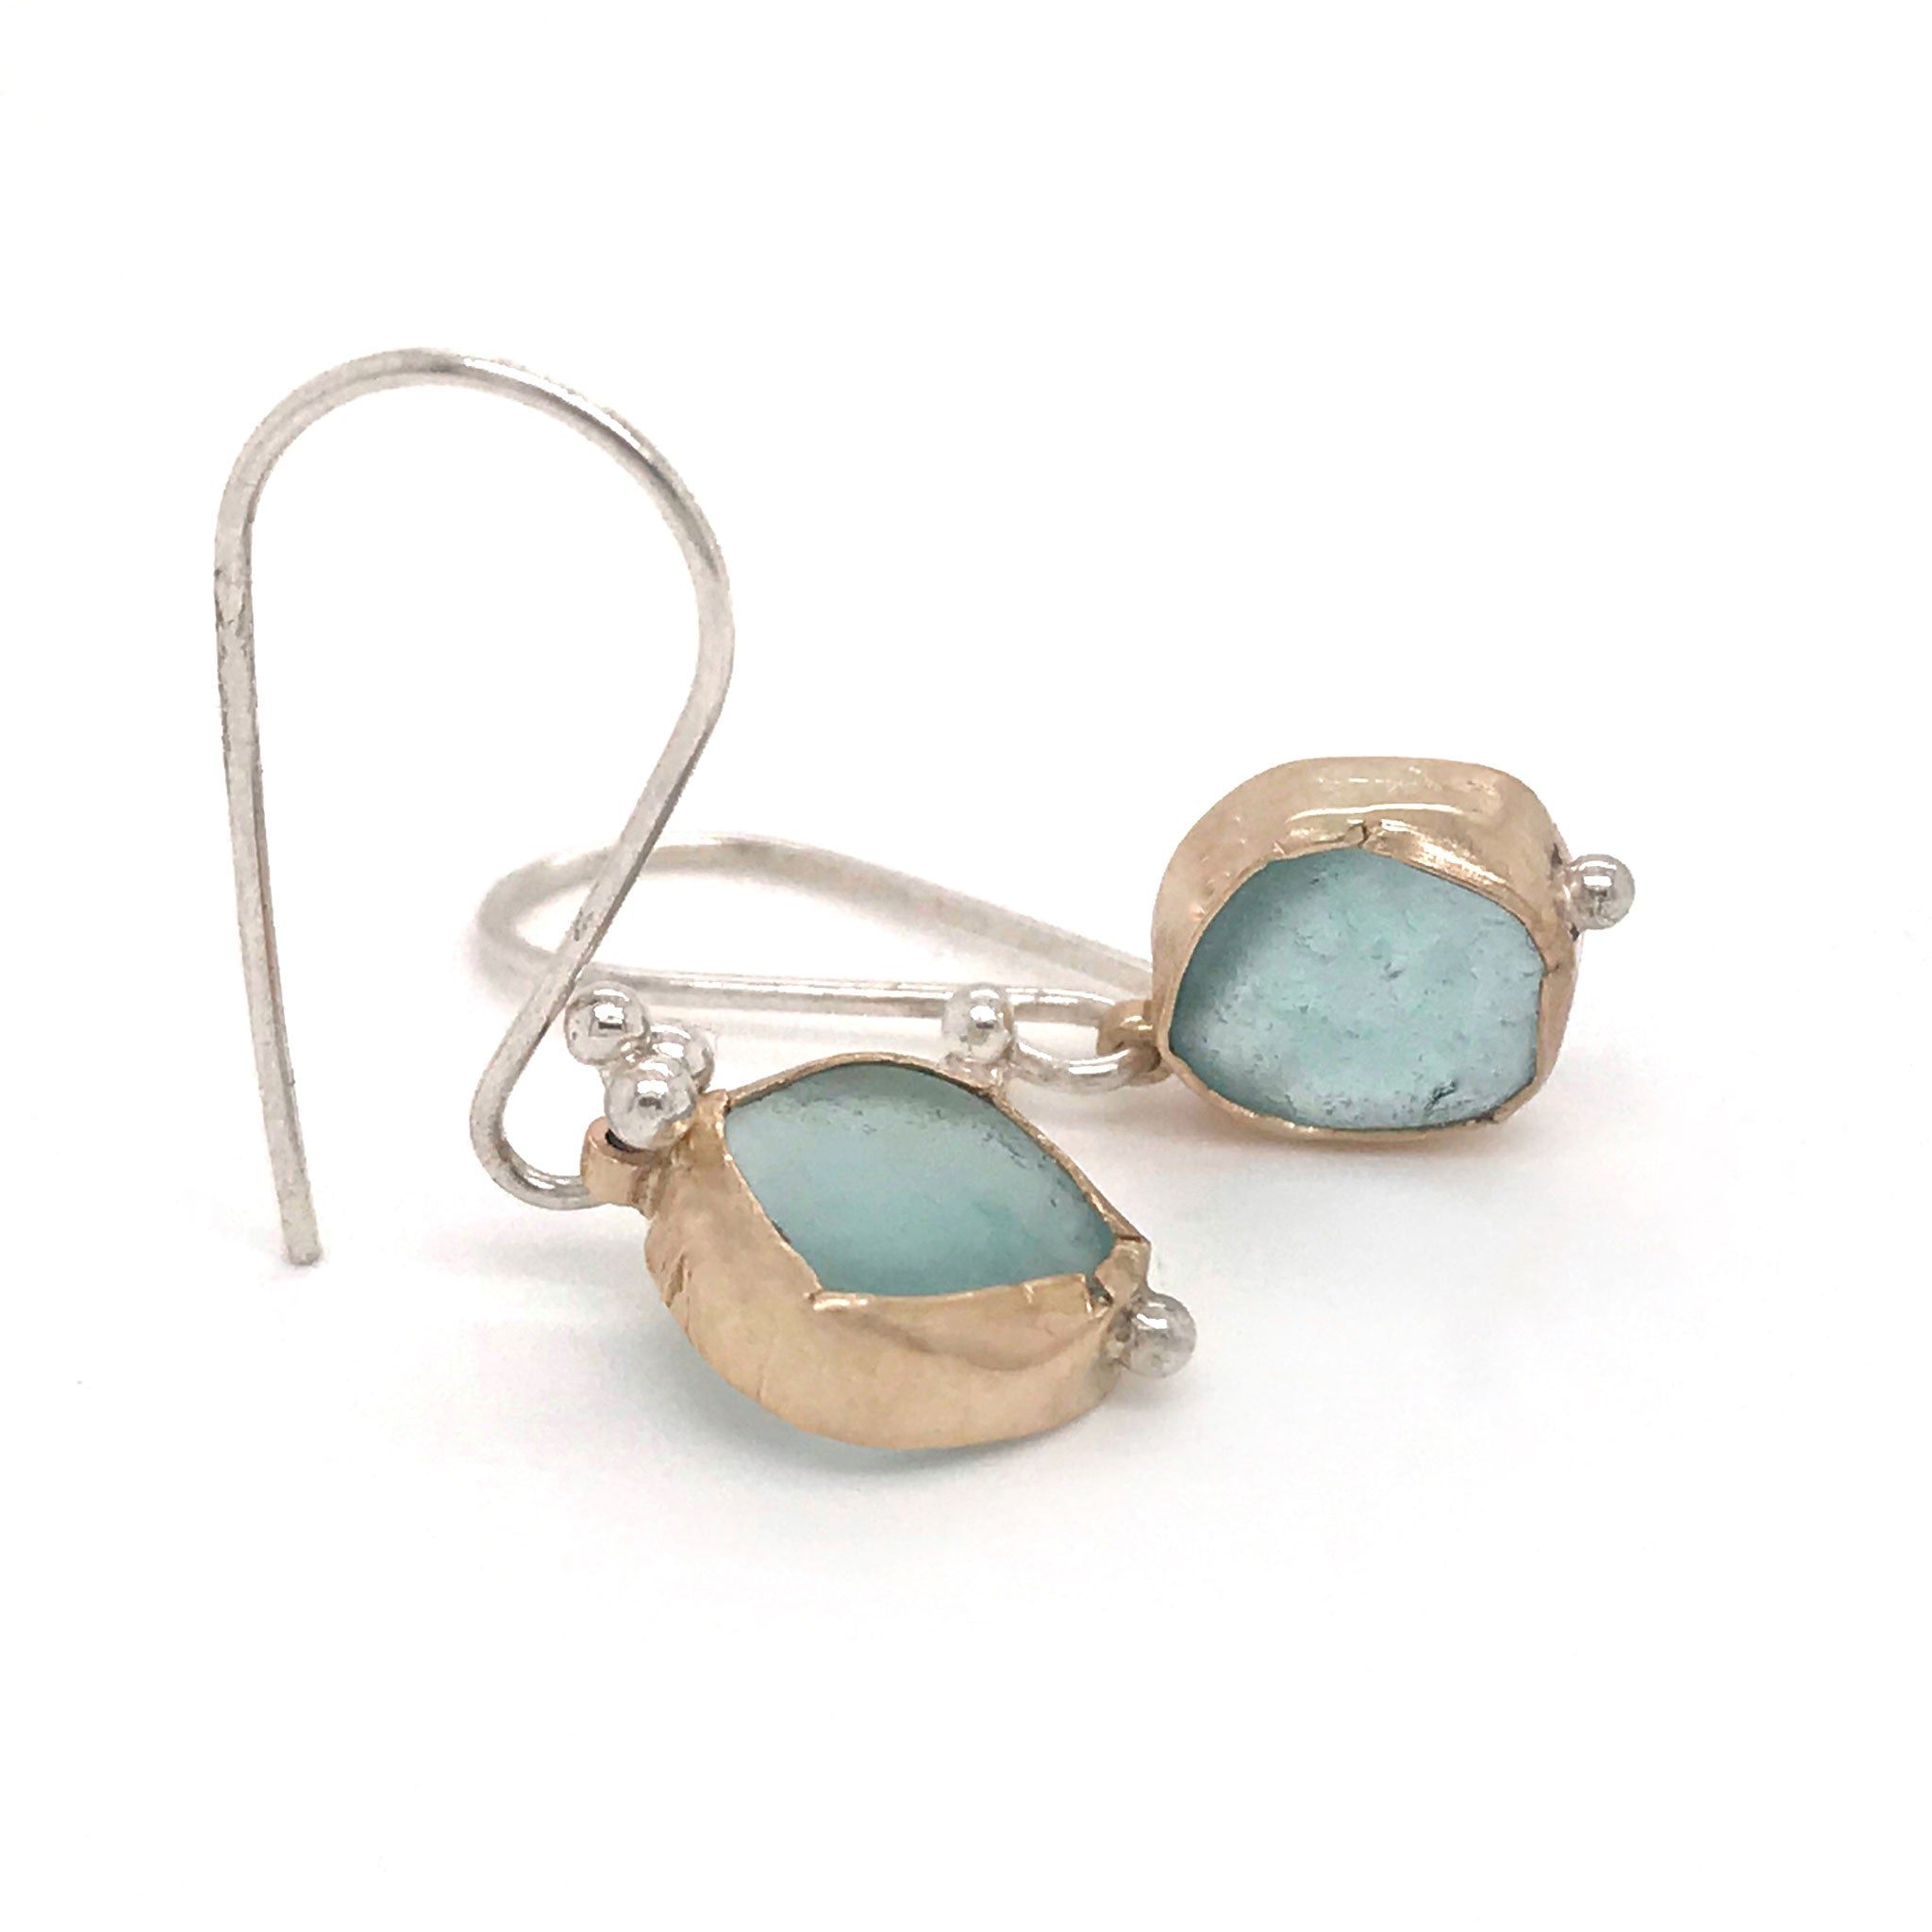 aqua beach glass earrings bezel set in gold hanging on sterling silver hooks Kriket Broadhurst jewellery